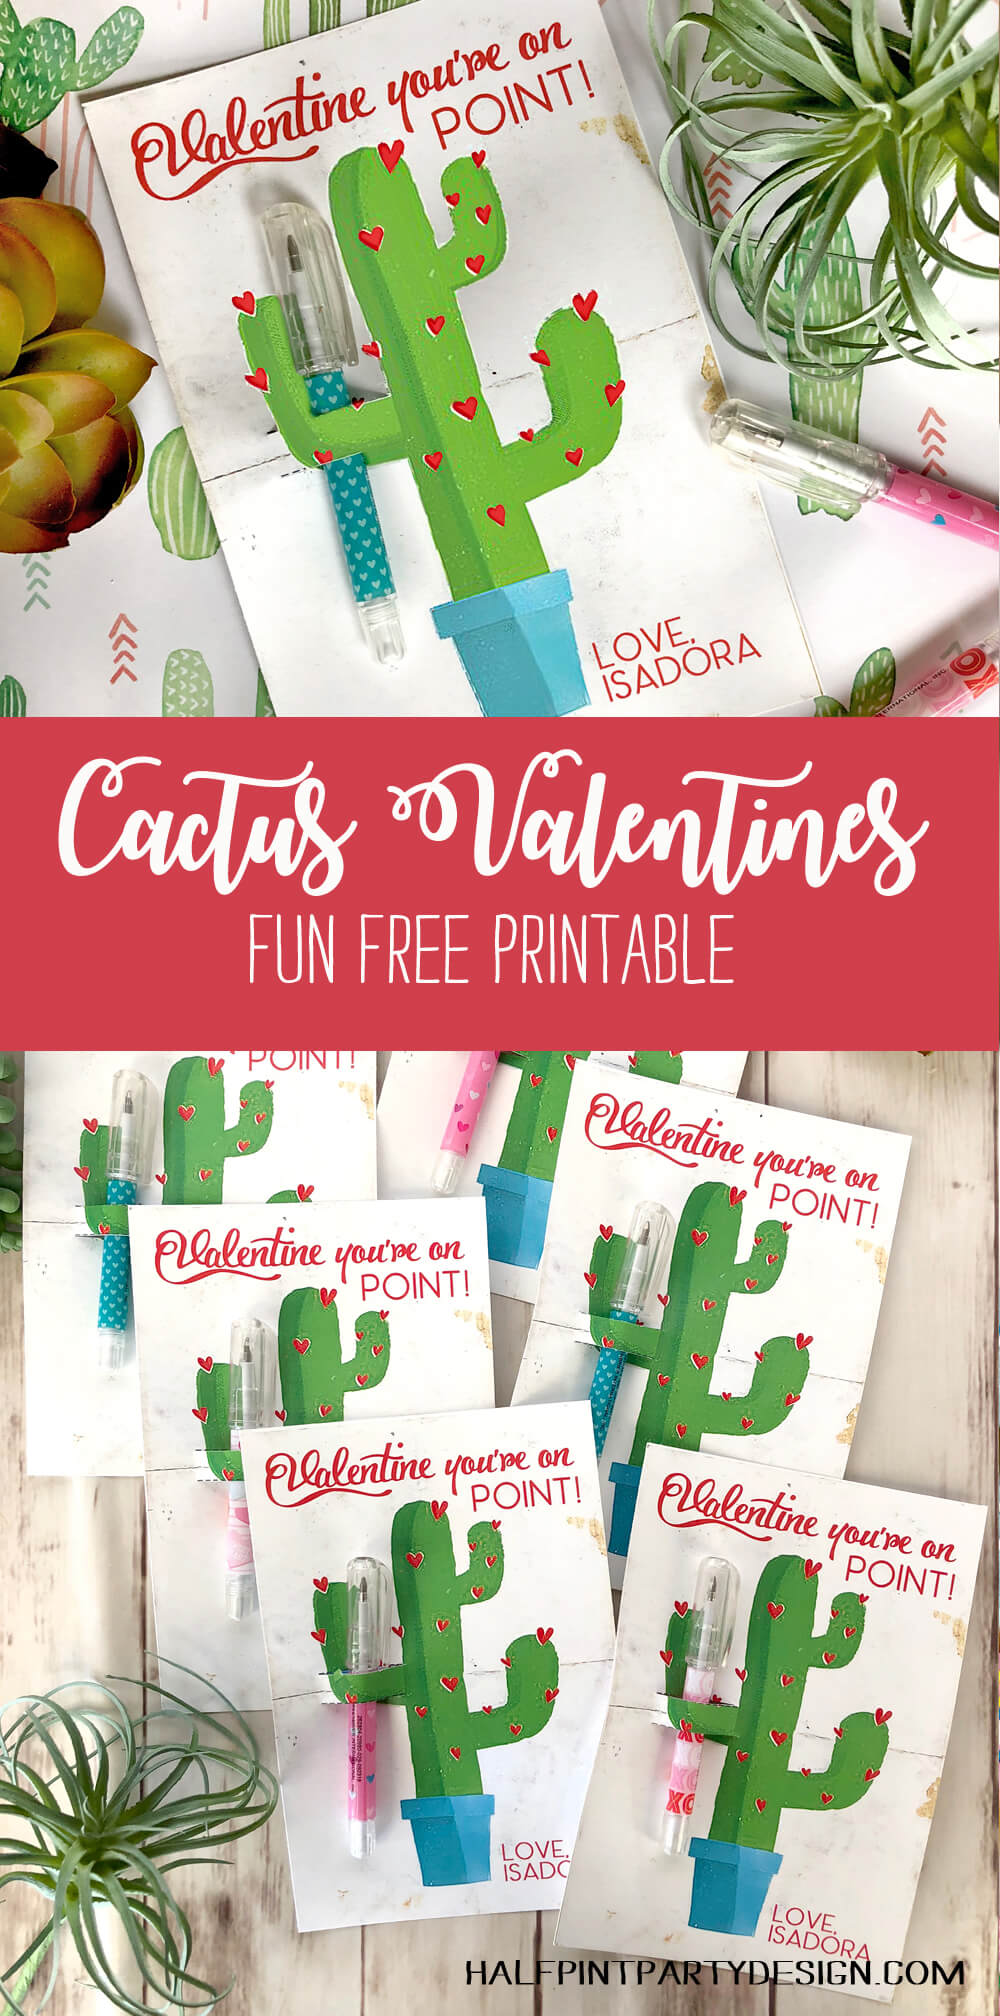 Darling Cactus Valentines with fun free printable